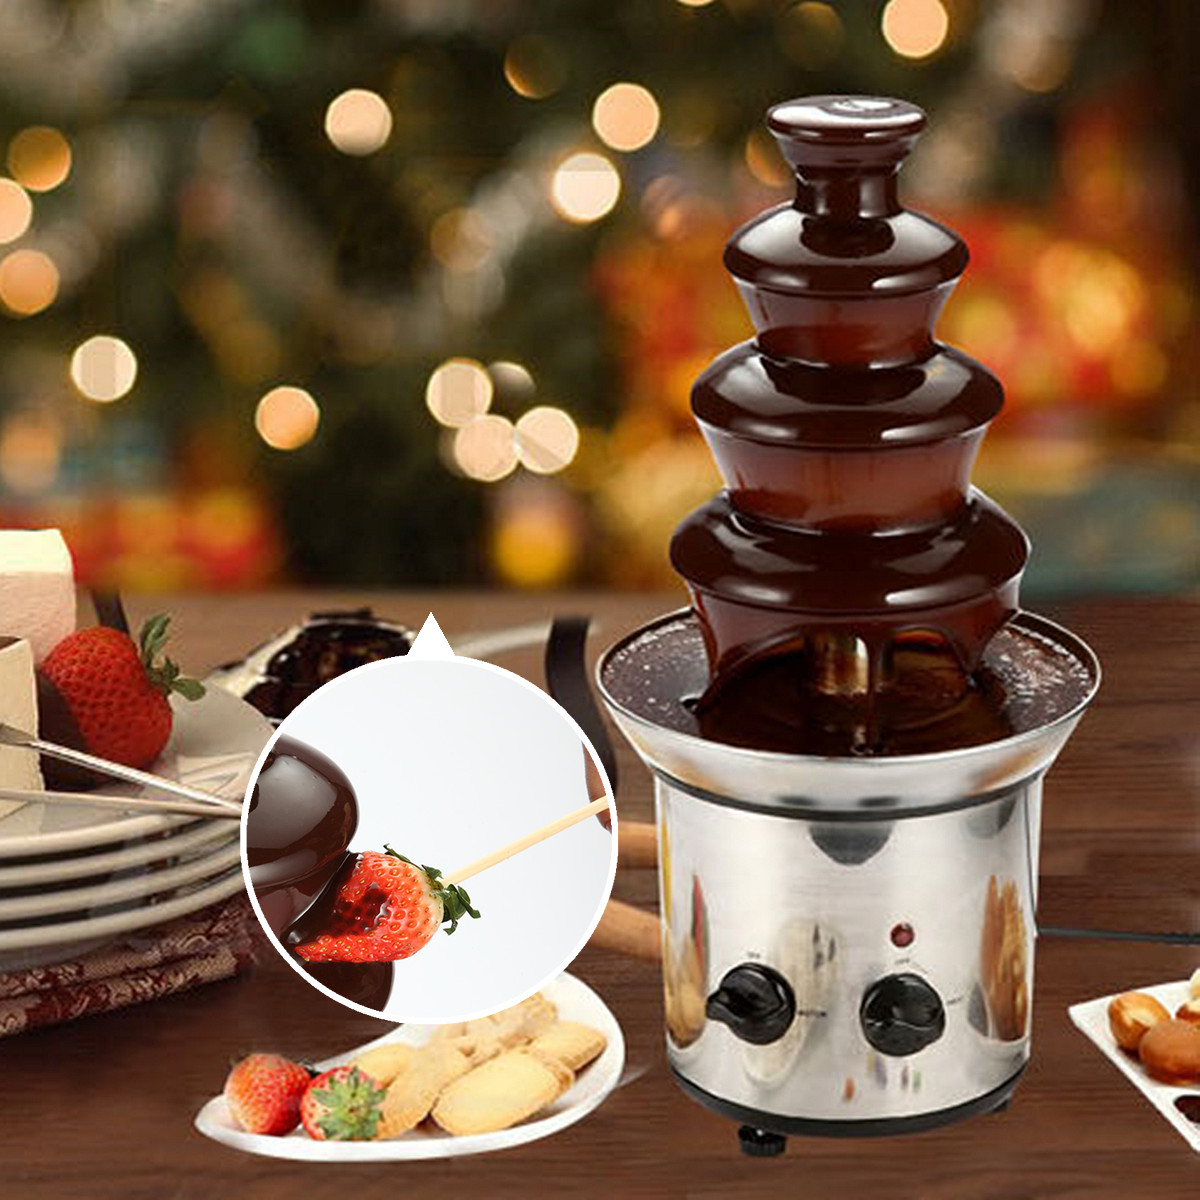 Chocolate Fondue Fountain 4 Tier Mini Stainless Steel 220V EU Plug Waterfall Melting Machine Adjustable Heat Stability for FruitChocolate Fondue Fountain 4 Tier Mini Stainless Steel 220V EU Plug Waterfall Melting Machine Adjustable Heat Stability for Fruit